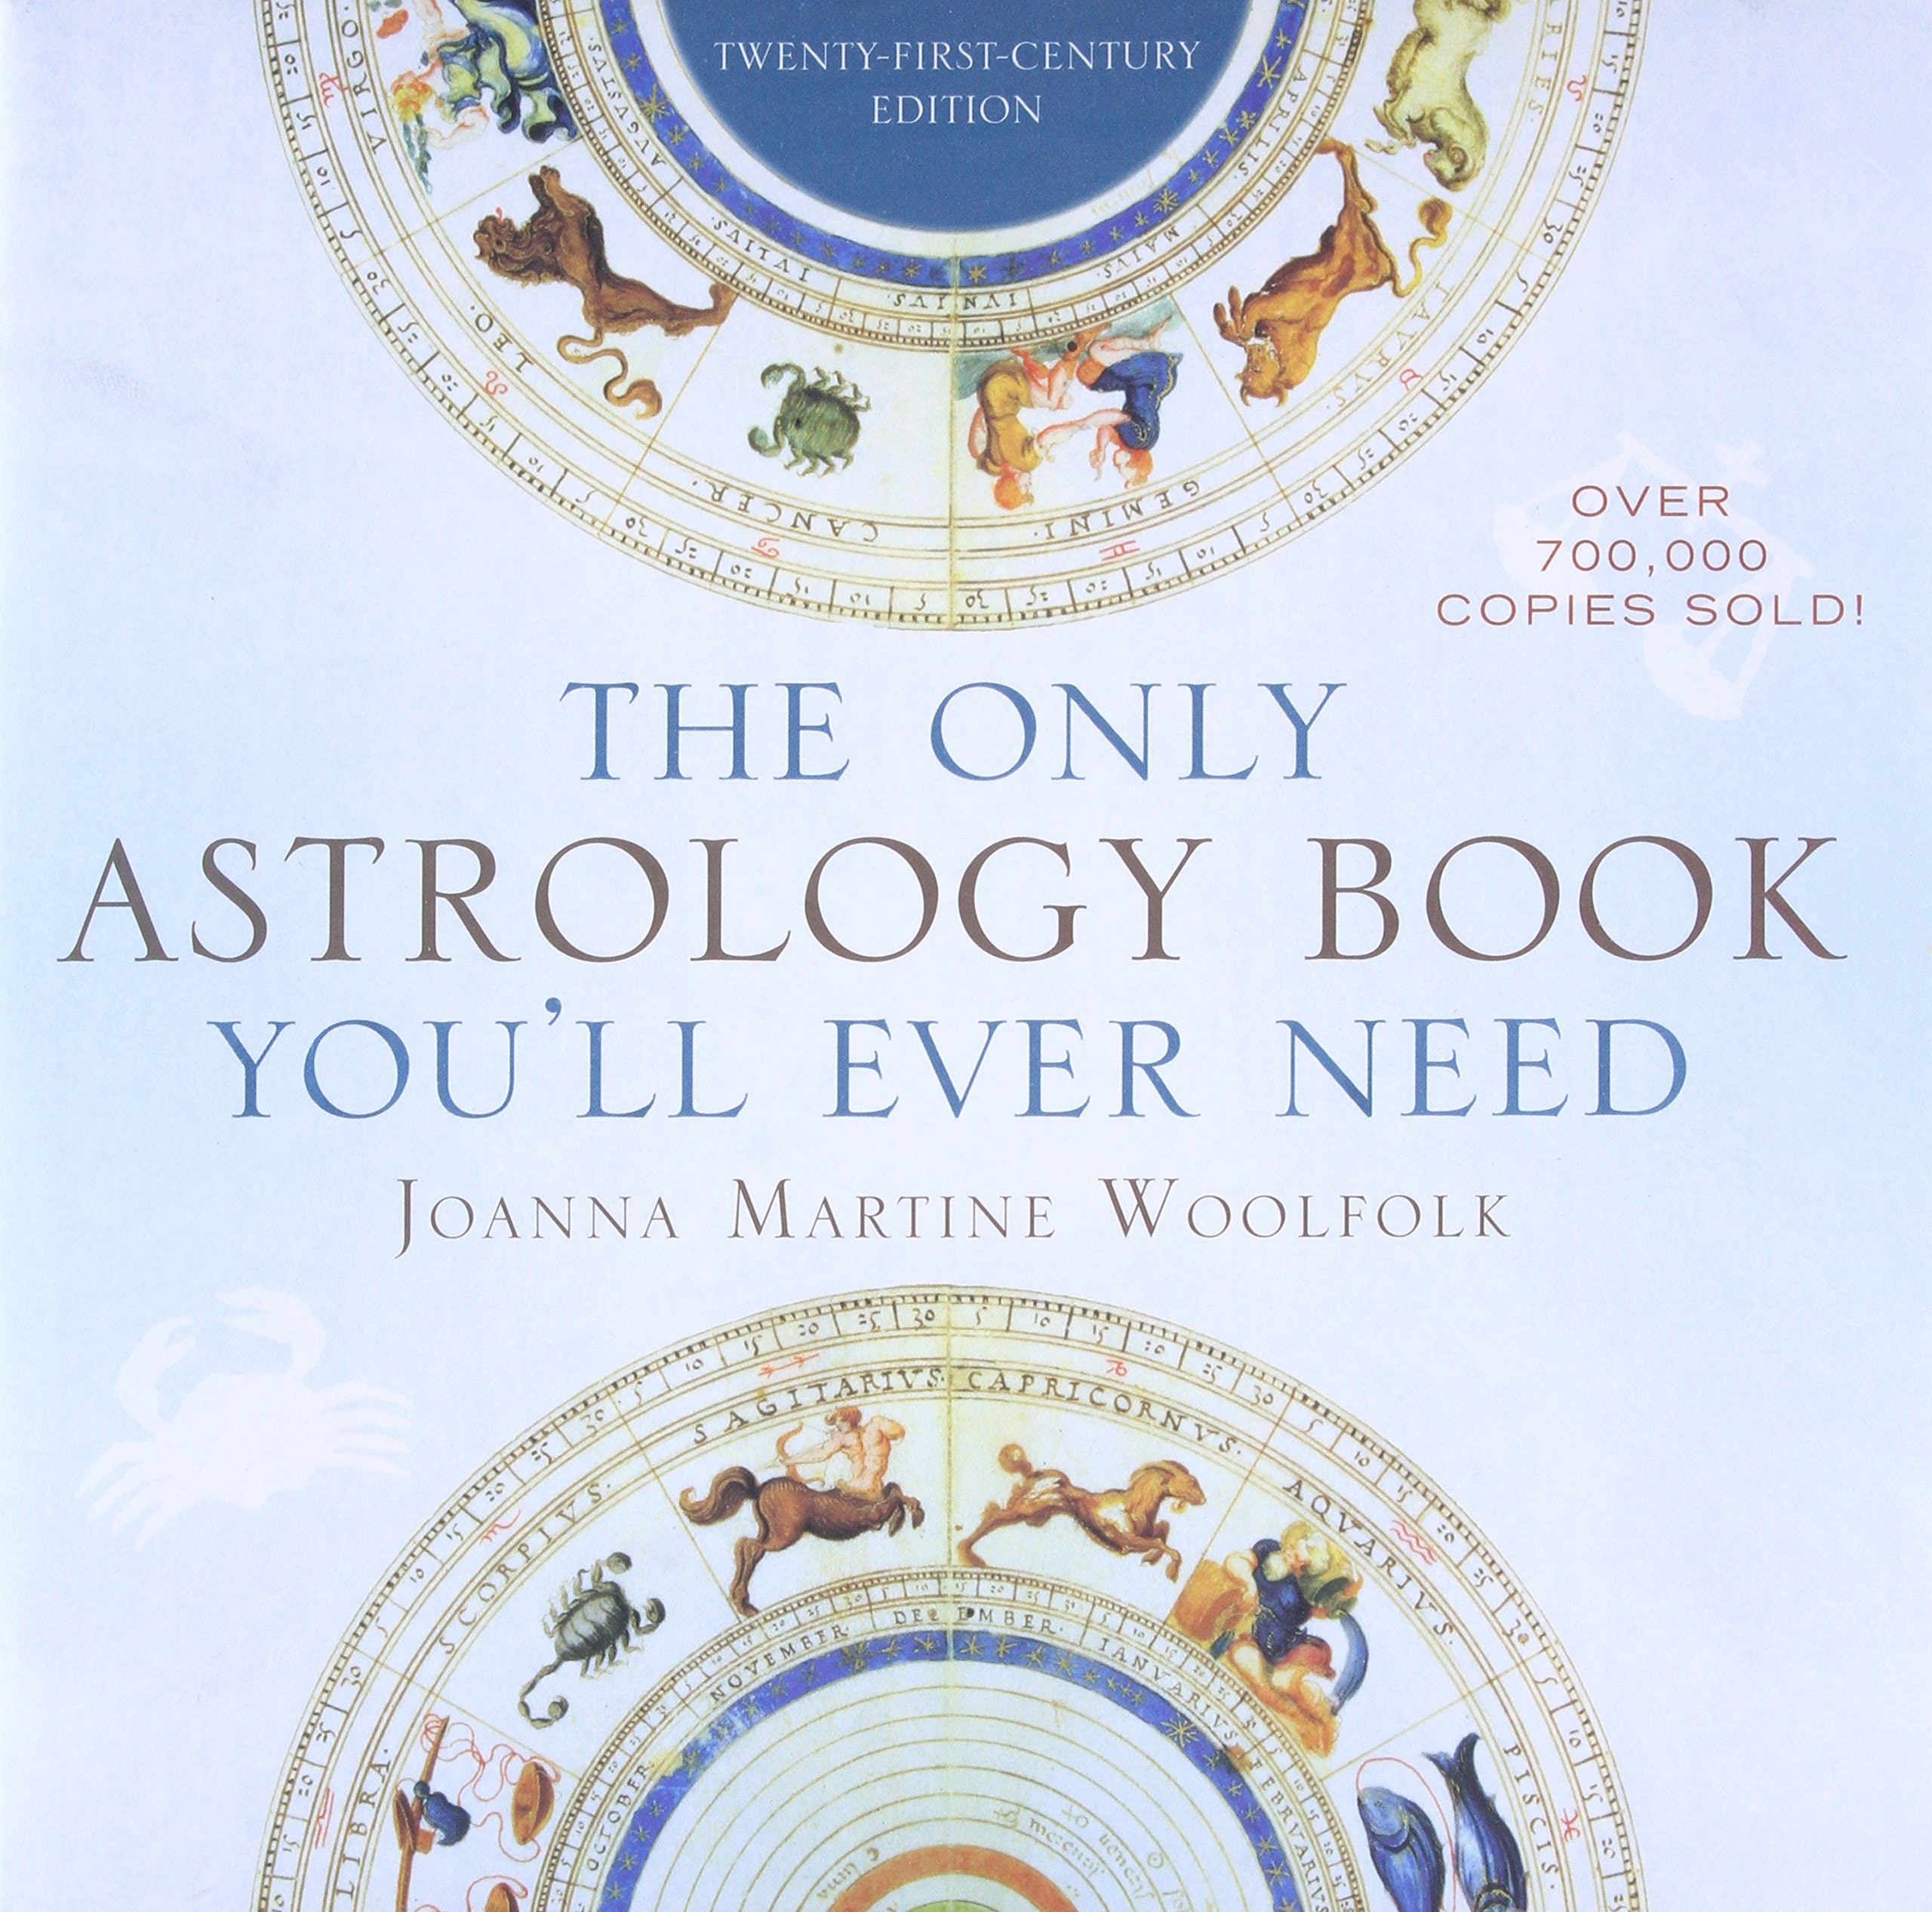 8 Books About Astrology To Read If You Want To Learn More